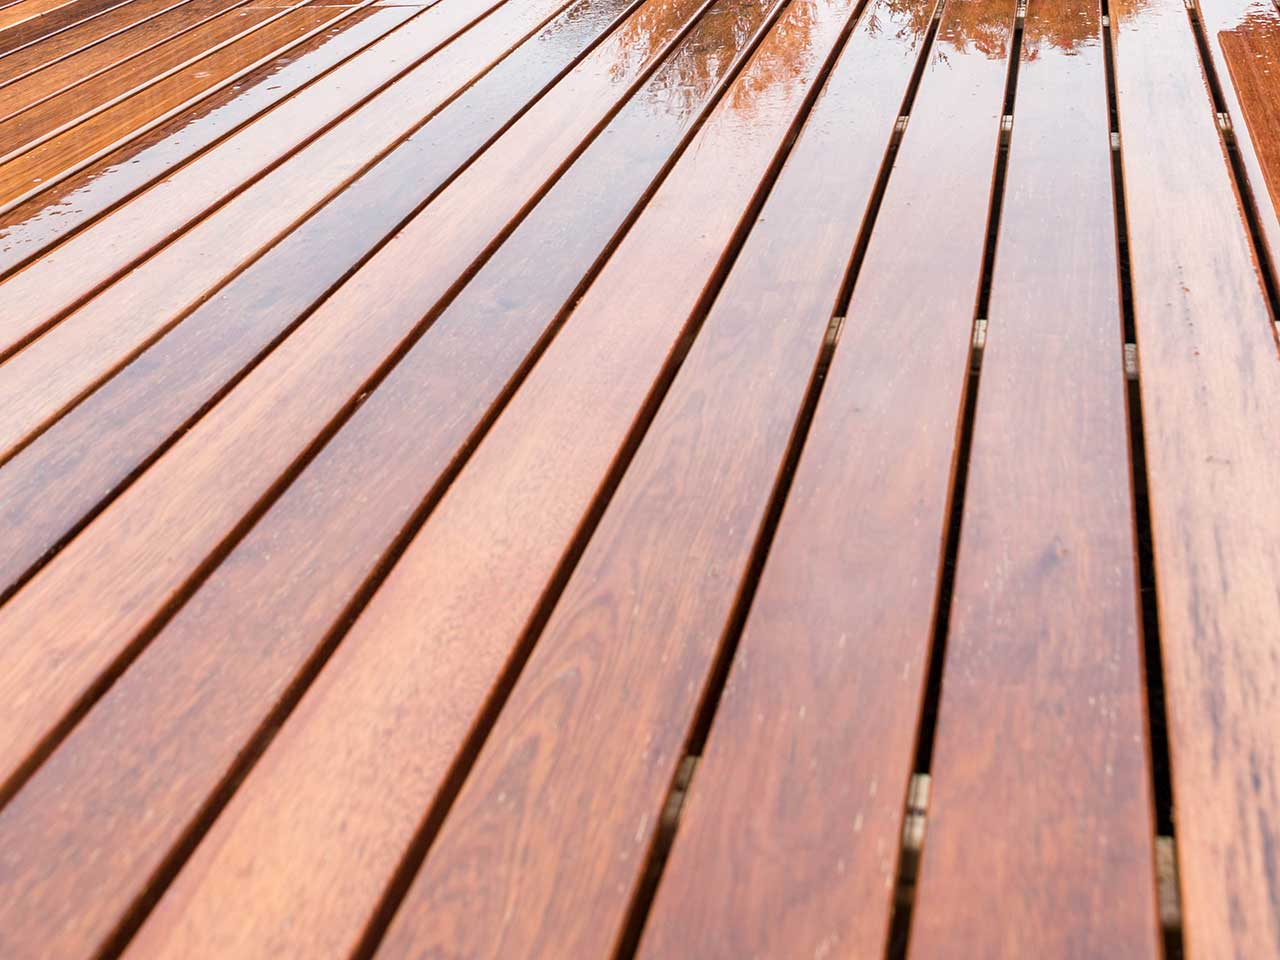 Lunawood Decking